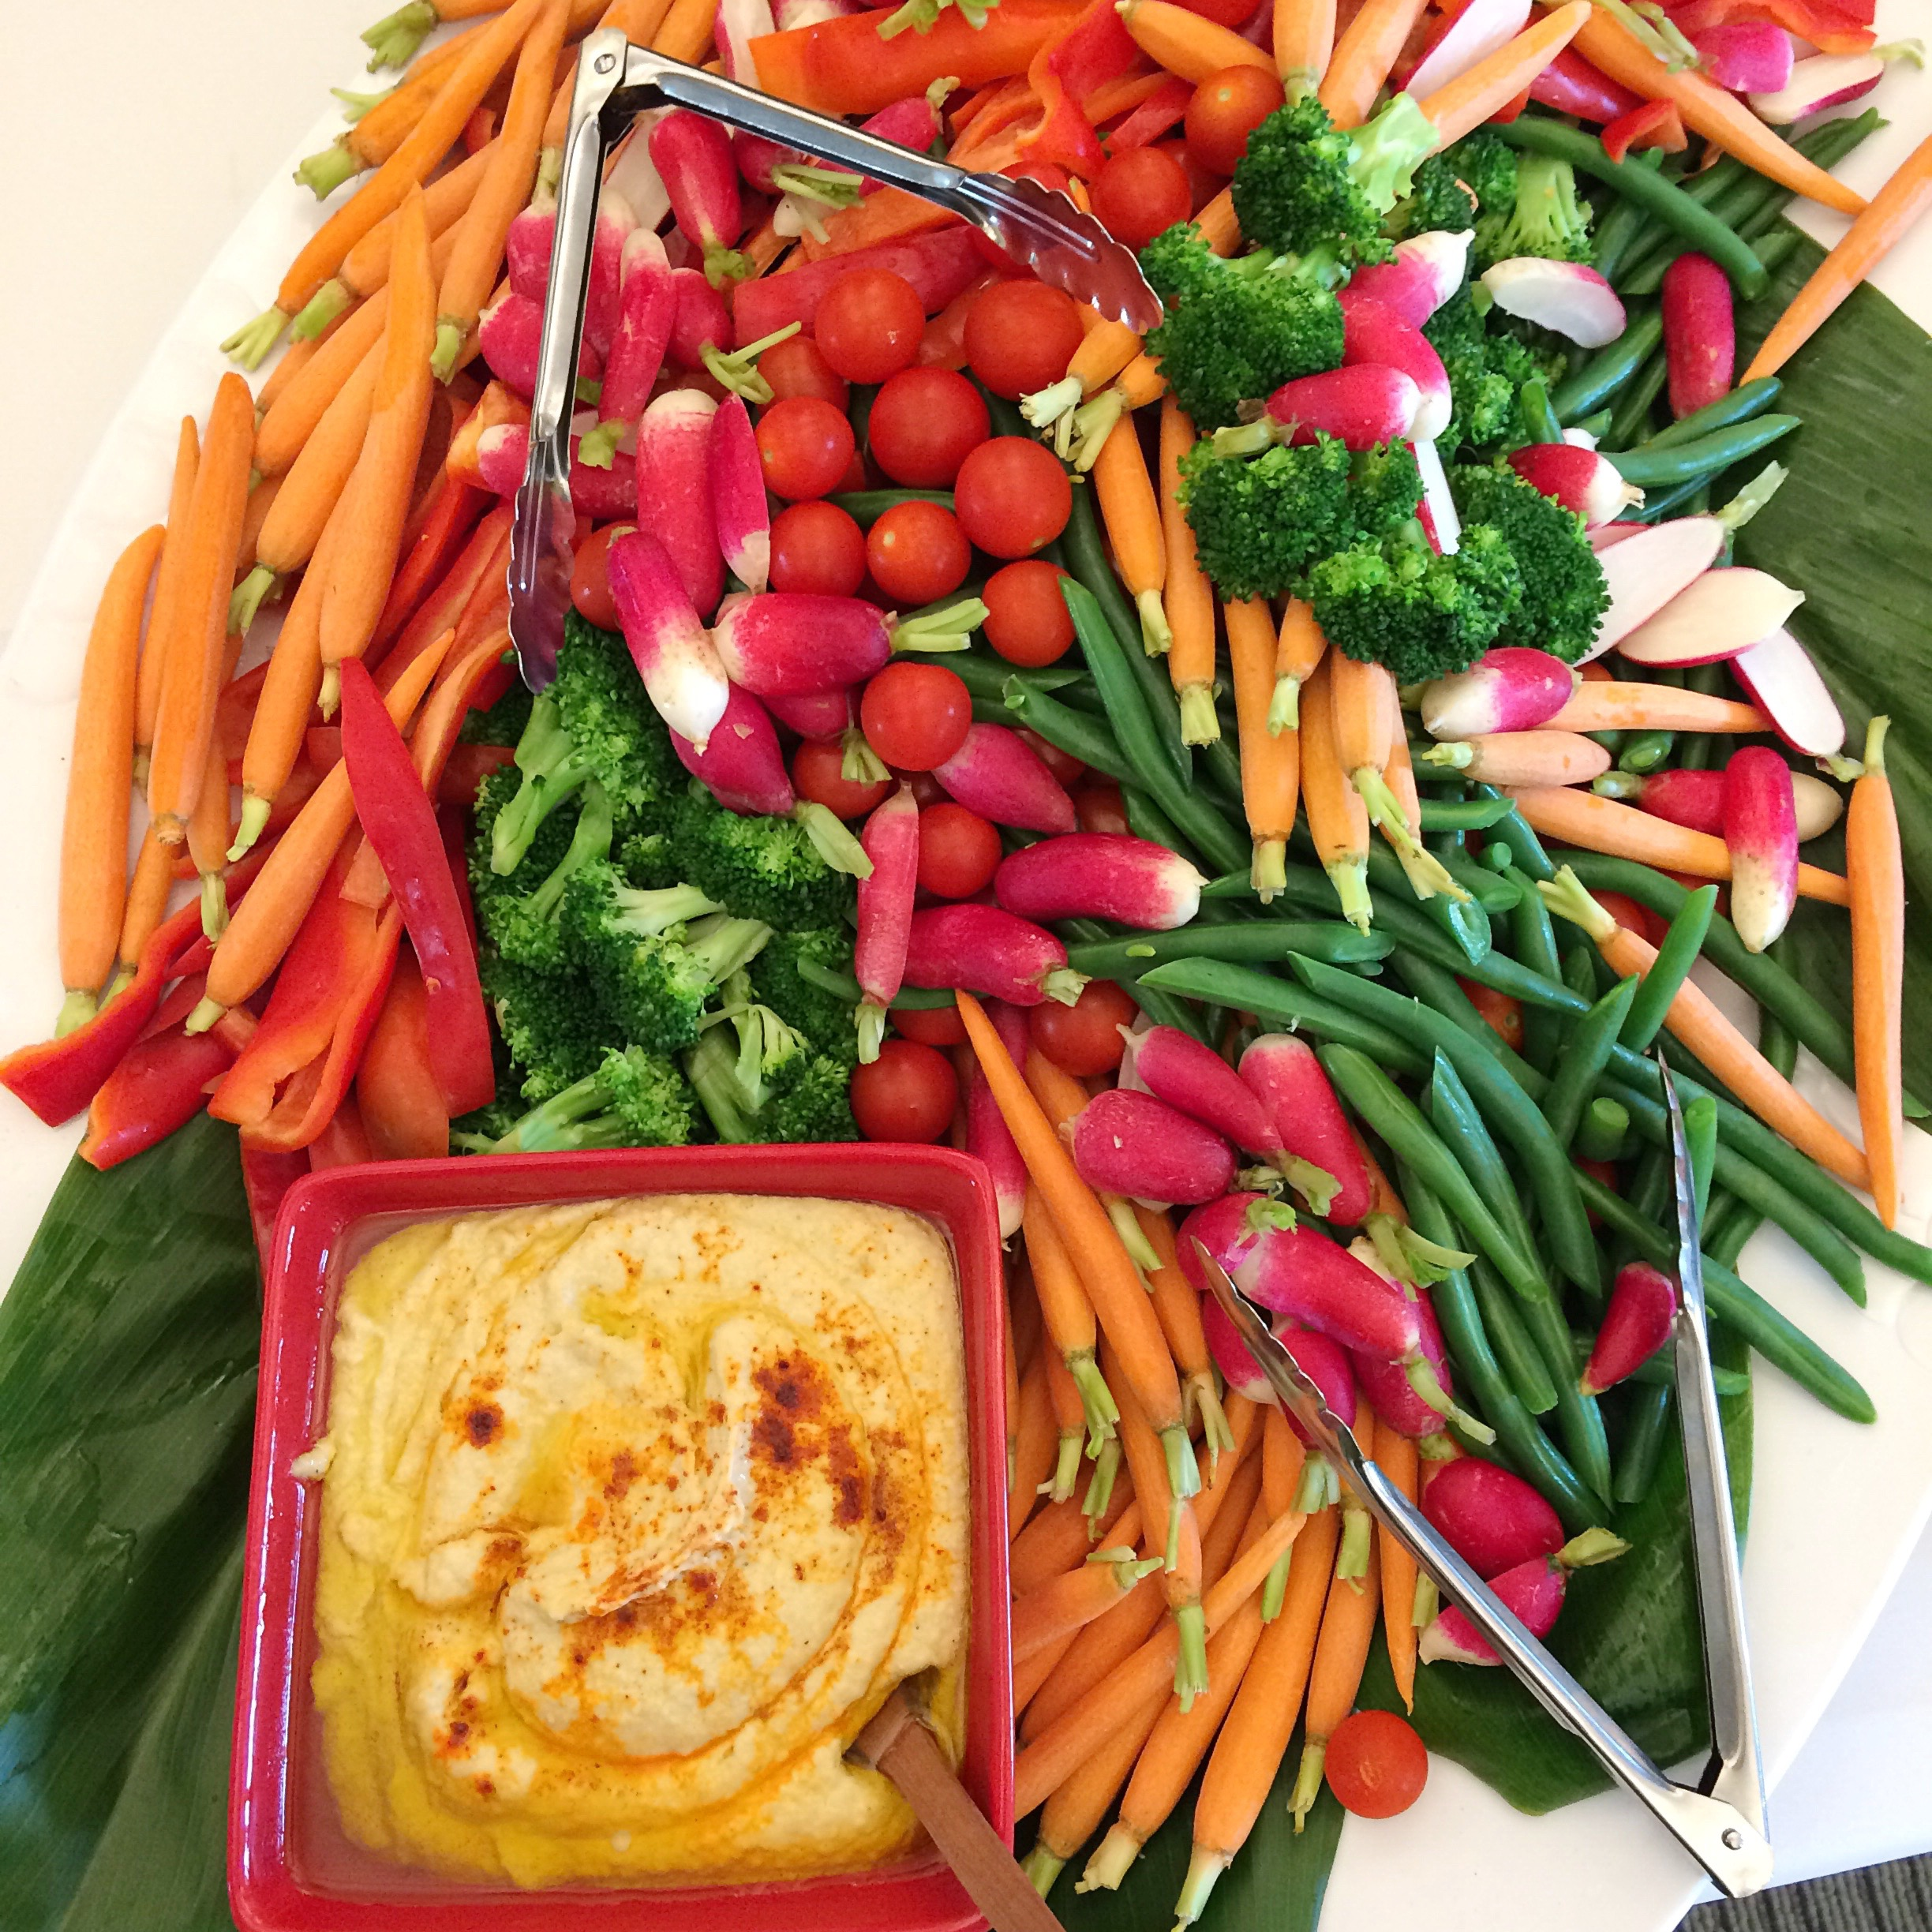 Vegetables with Hummus